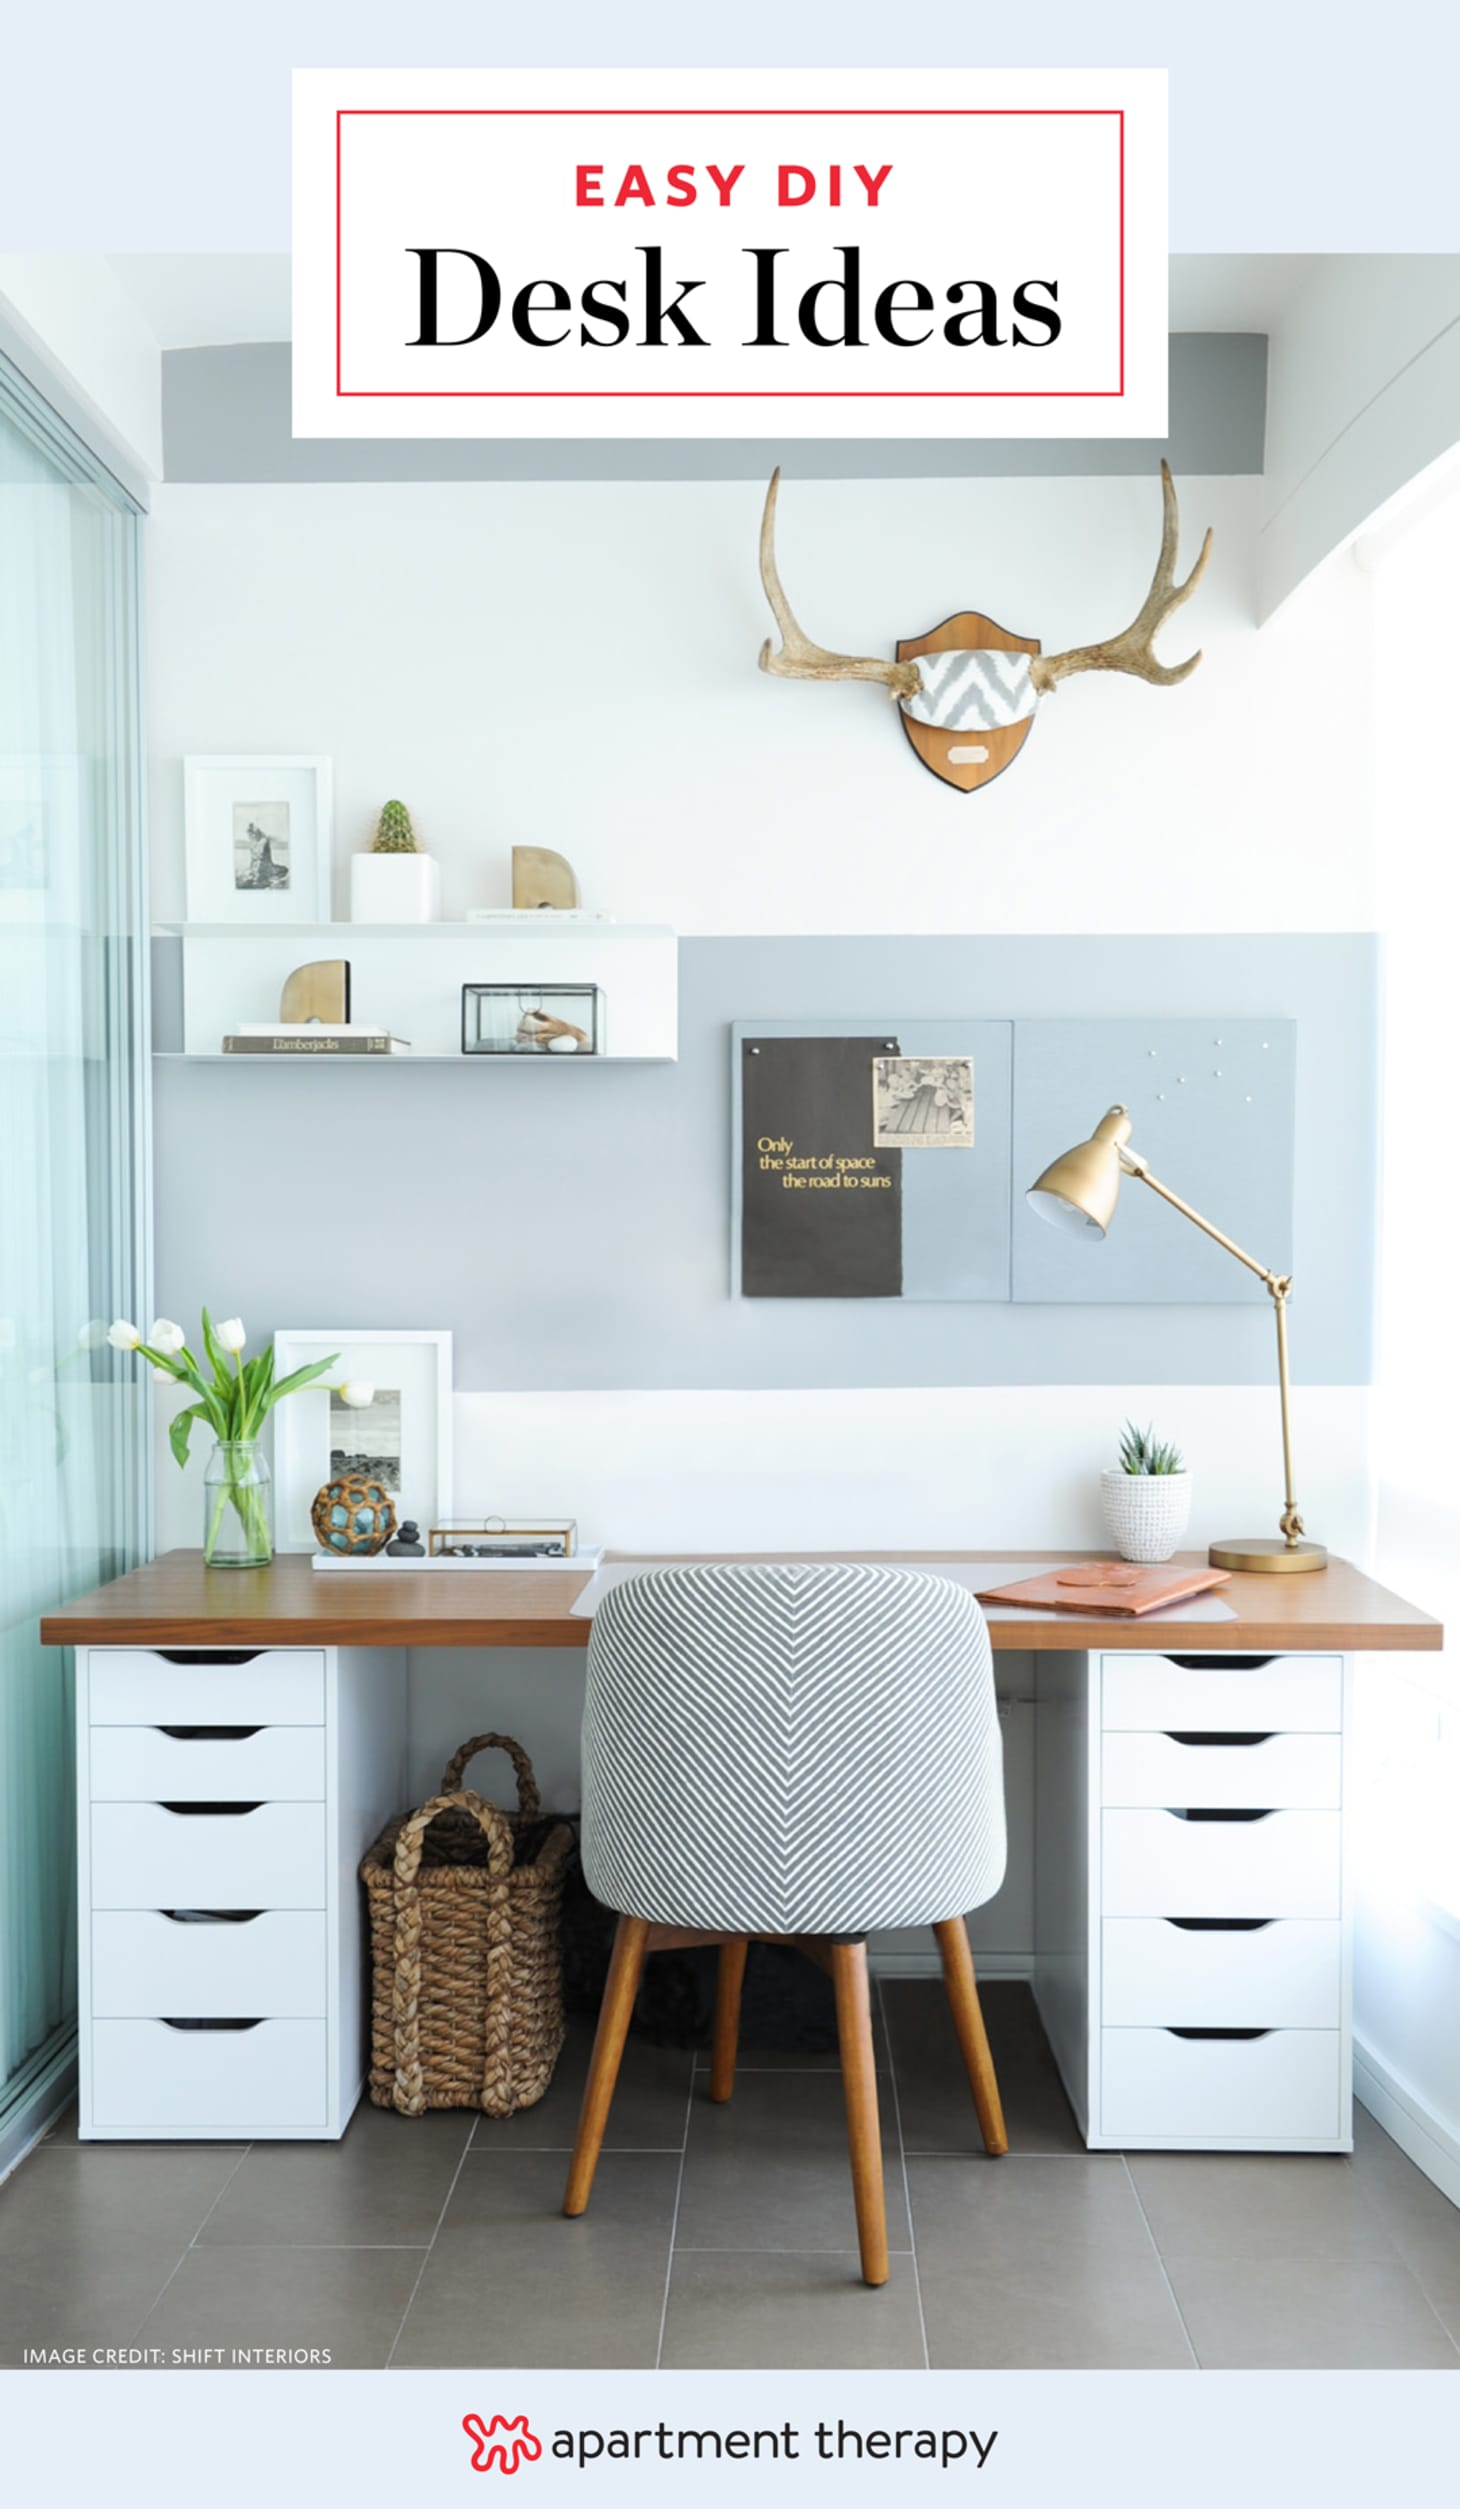 Quick Easy Diy Desk Ideas Projects Apartment Therapy